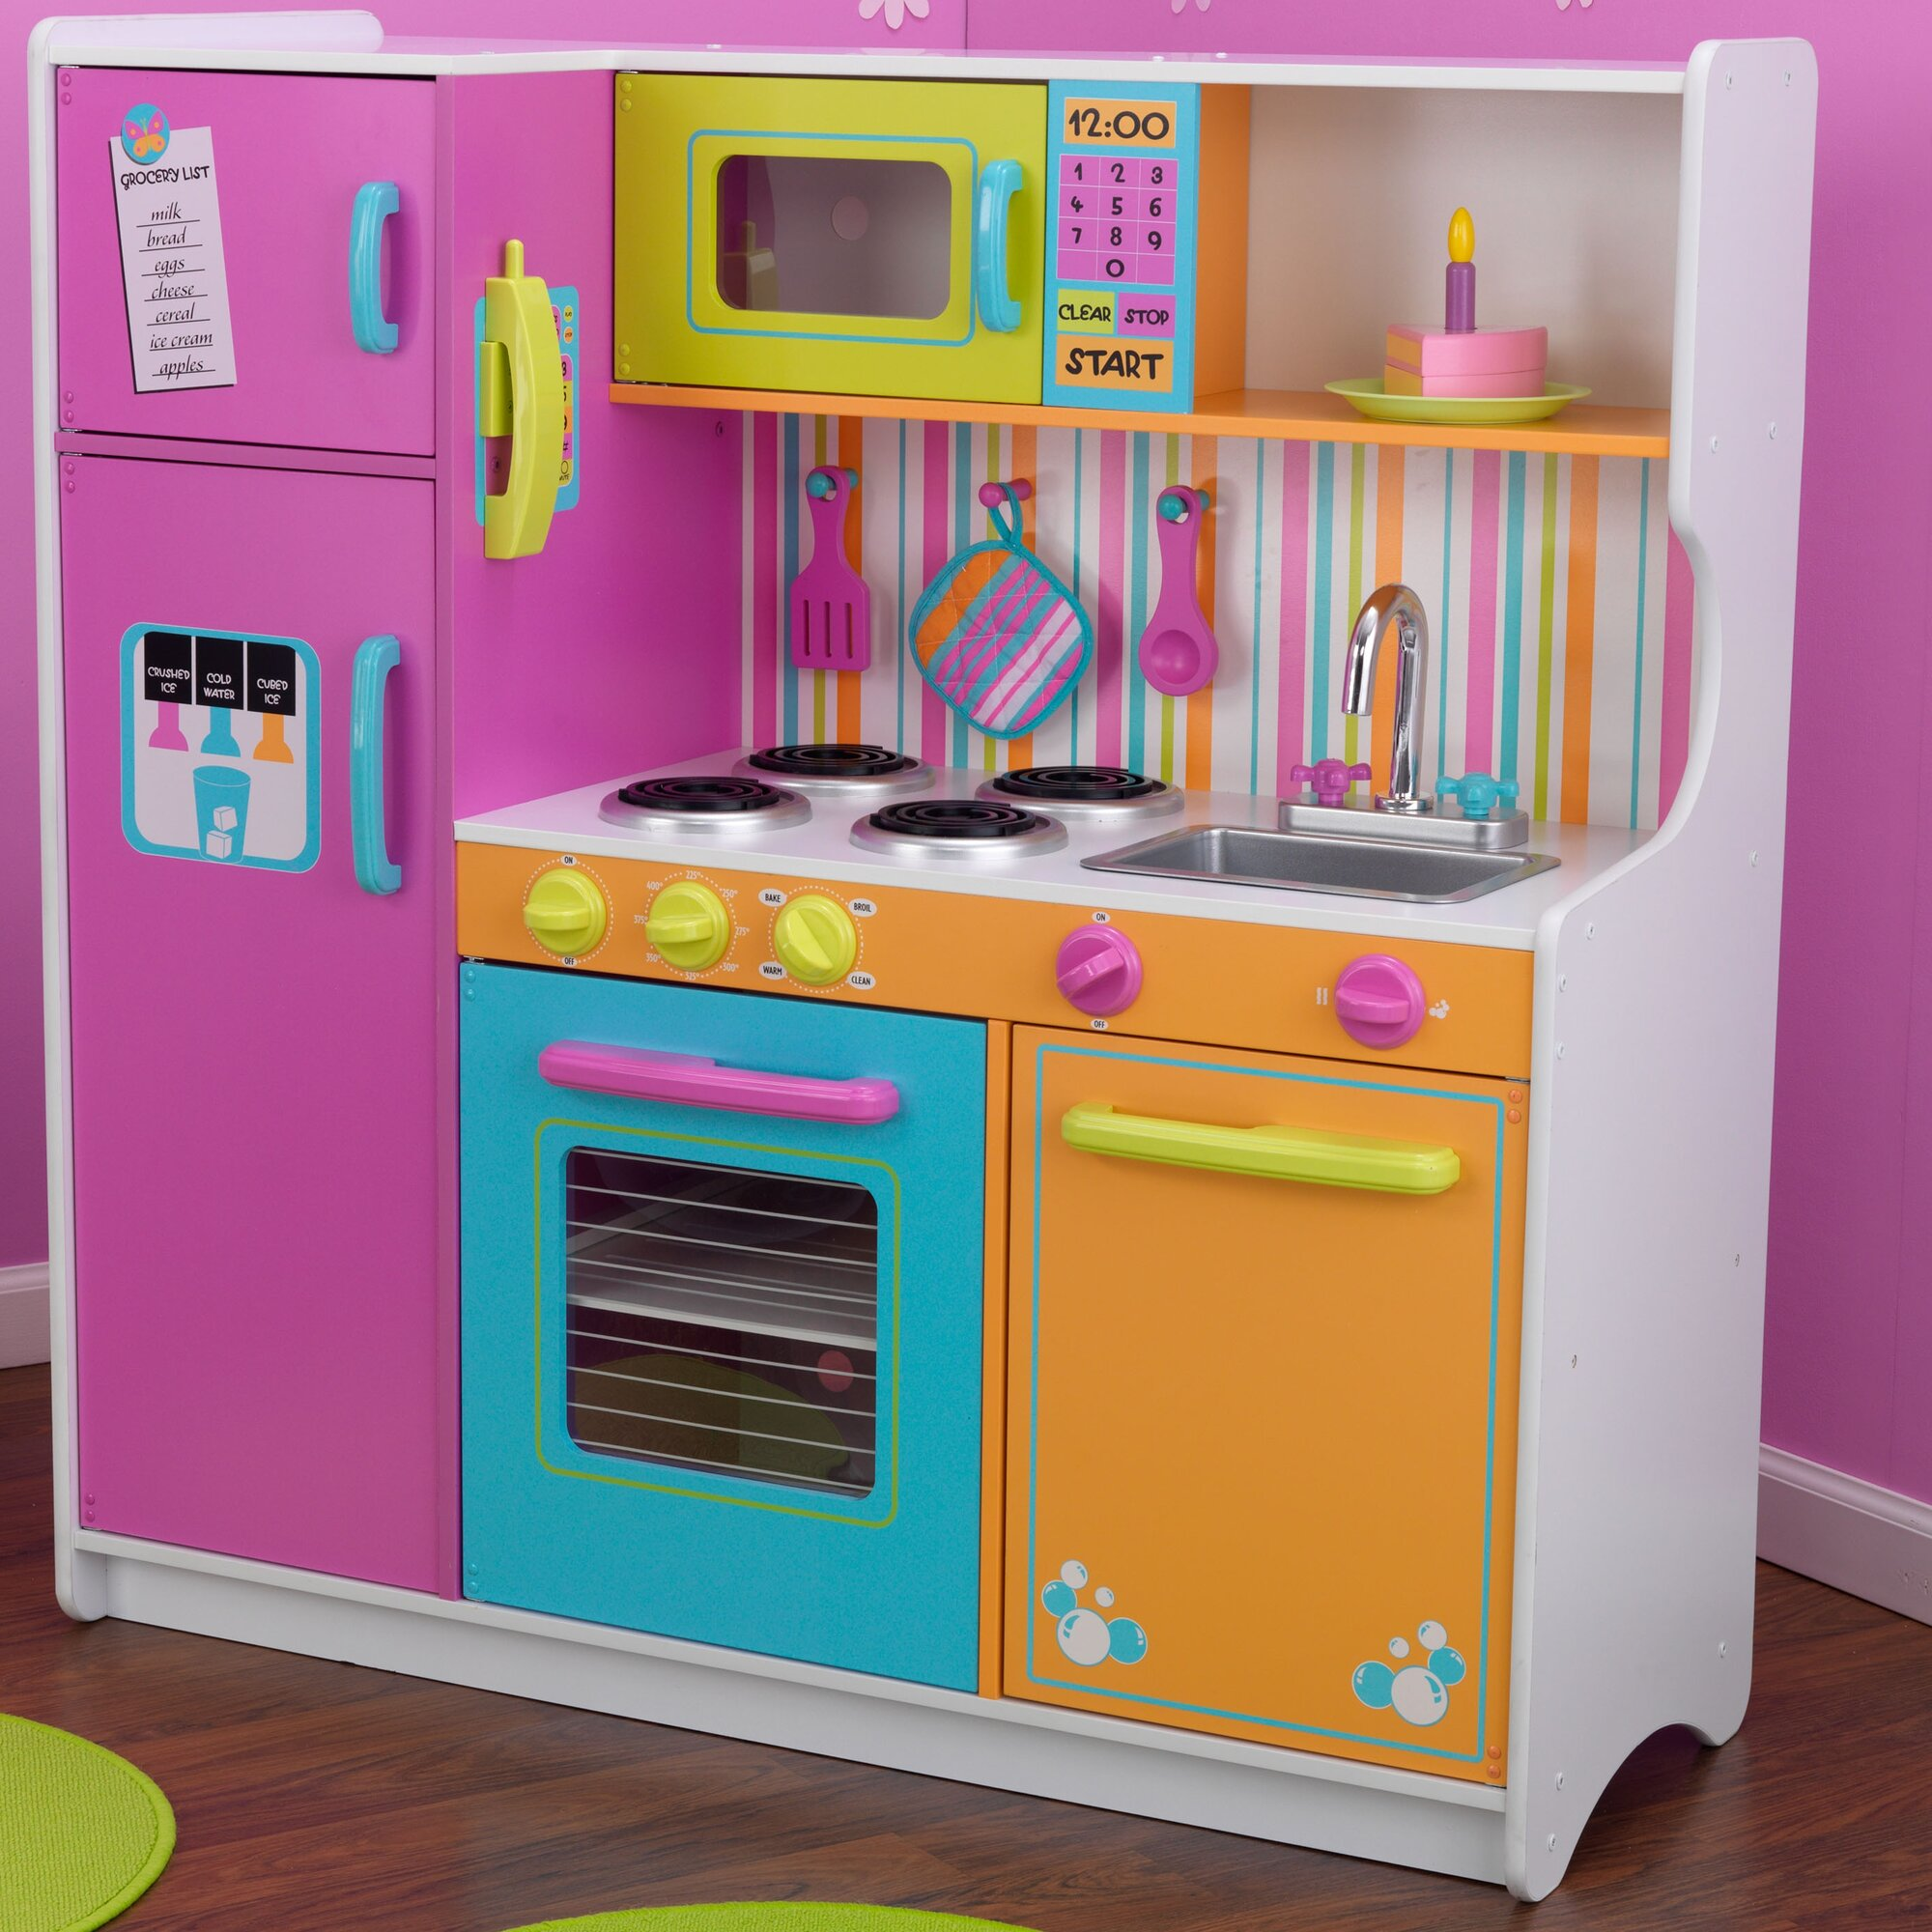 Play Kitchens On Sale: KidKraft Deluxe Big & Bright Kitchen Play Set & Reviews